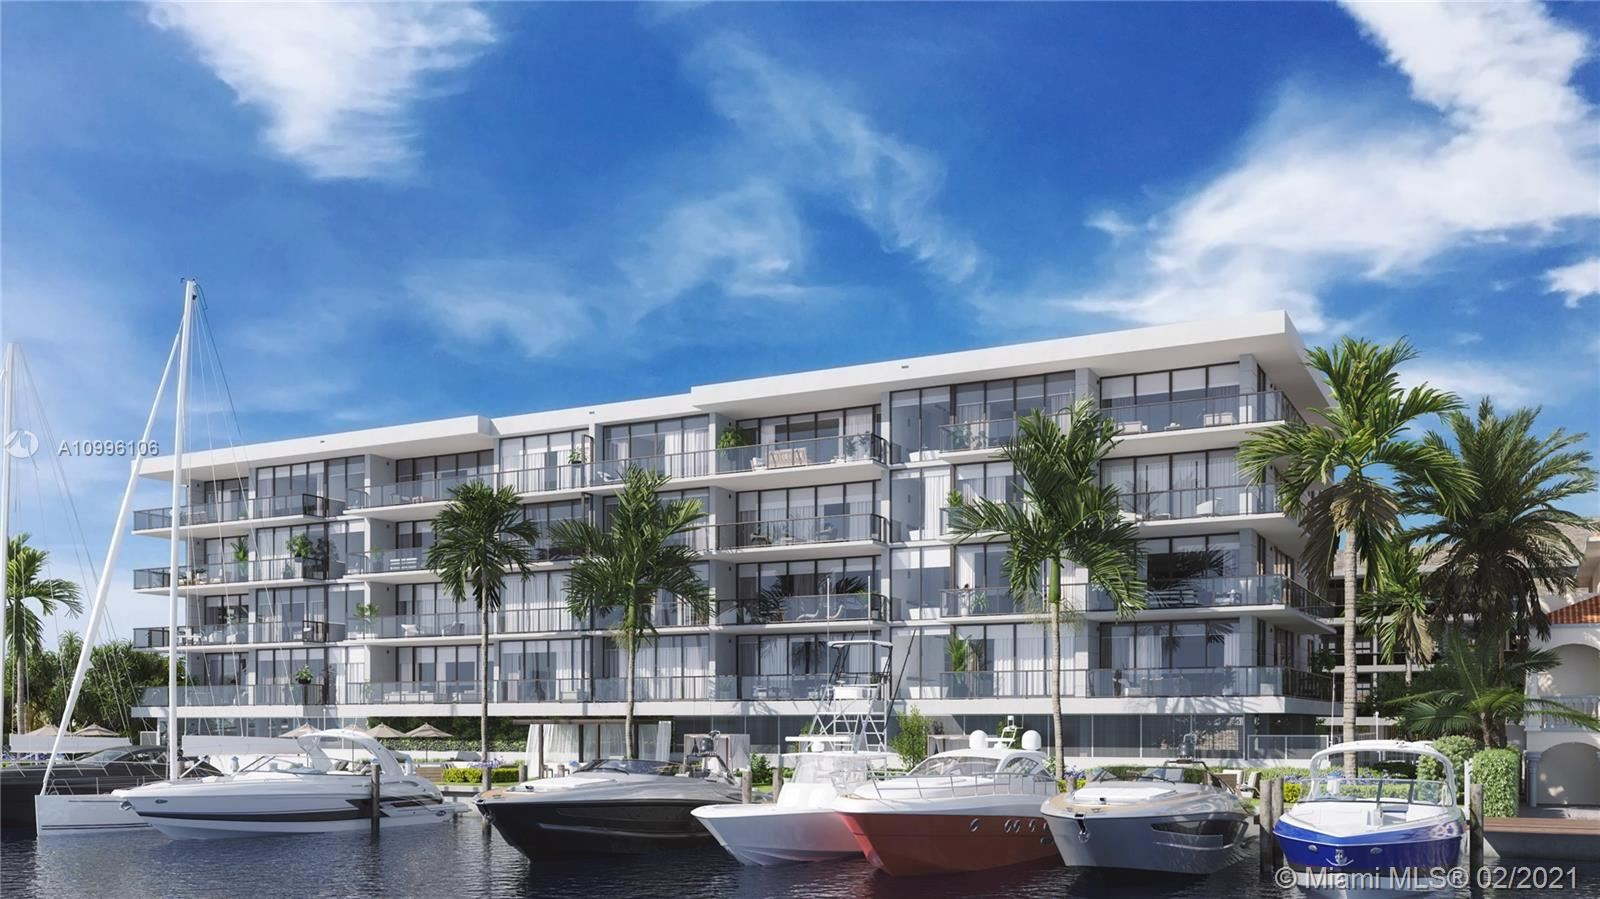 160 Isle Of Venice Dr. #PH3, Fort Lauderdale, FL 33301 - #: A10996106